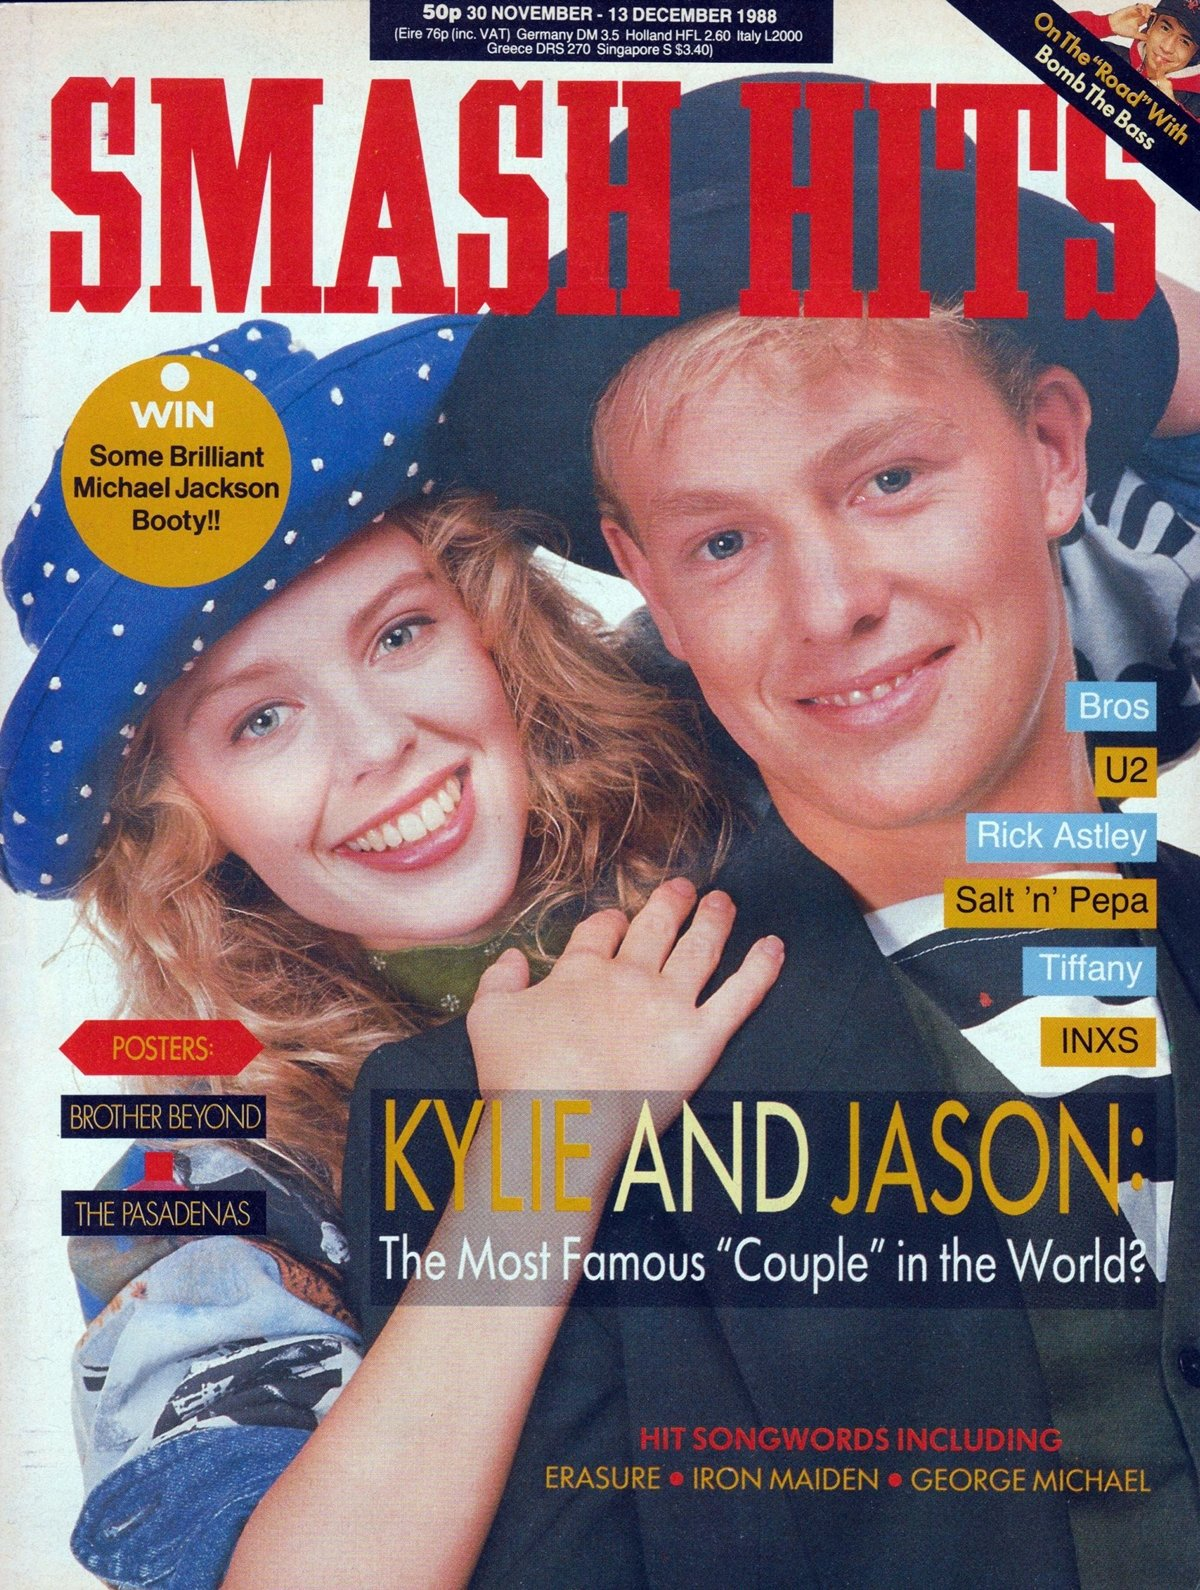 13 3 16 Smash Hits Covers That Will Take You Right Back To Your Youth